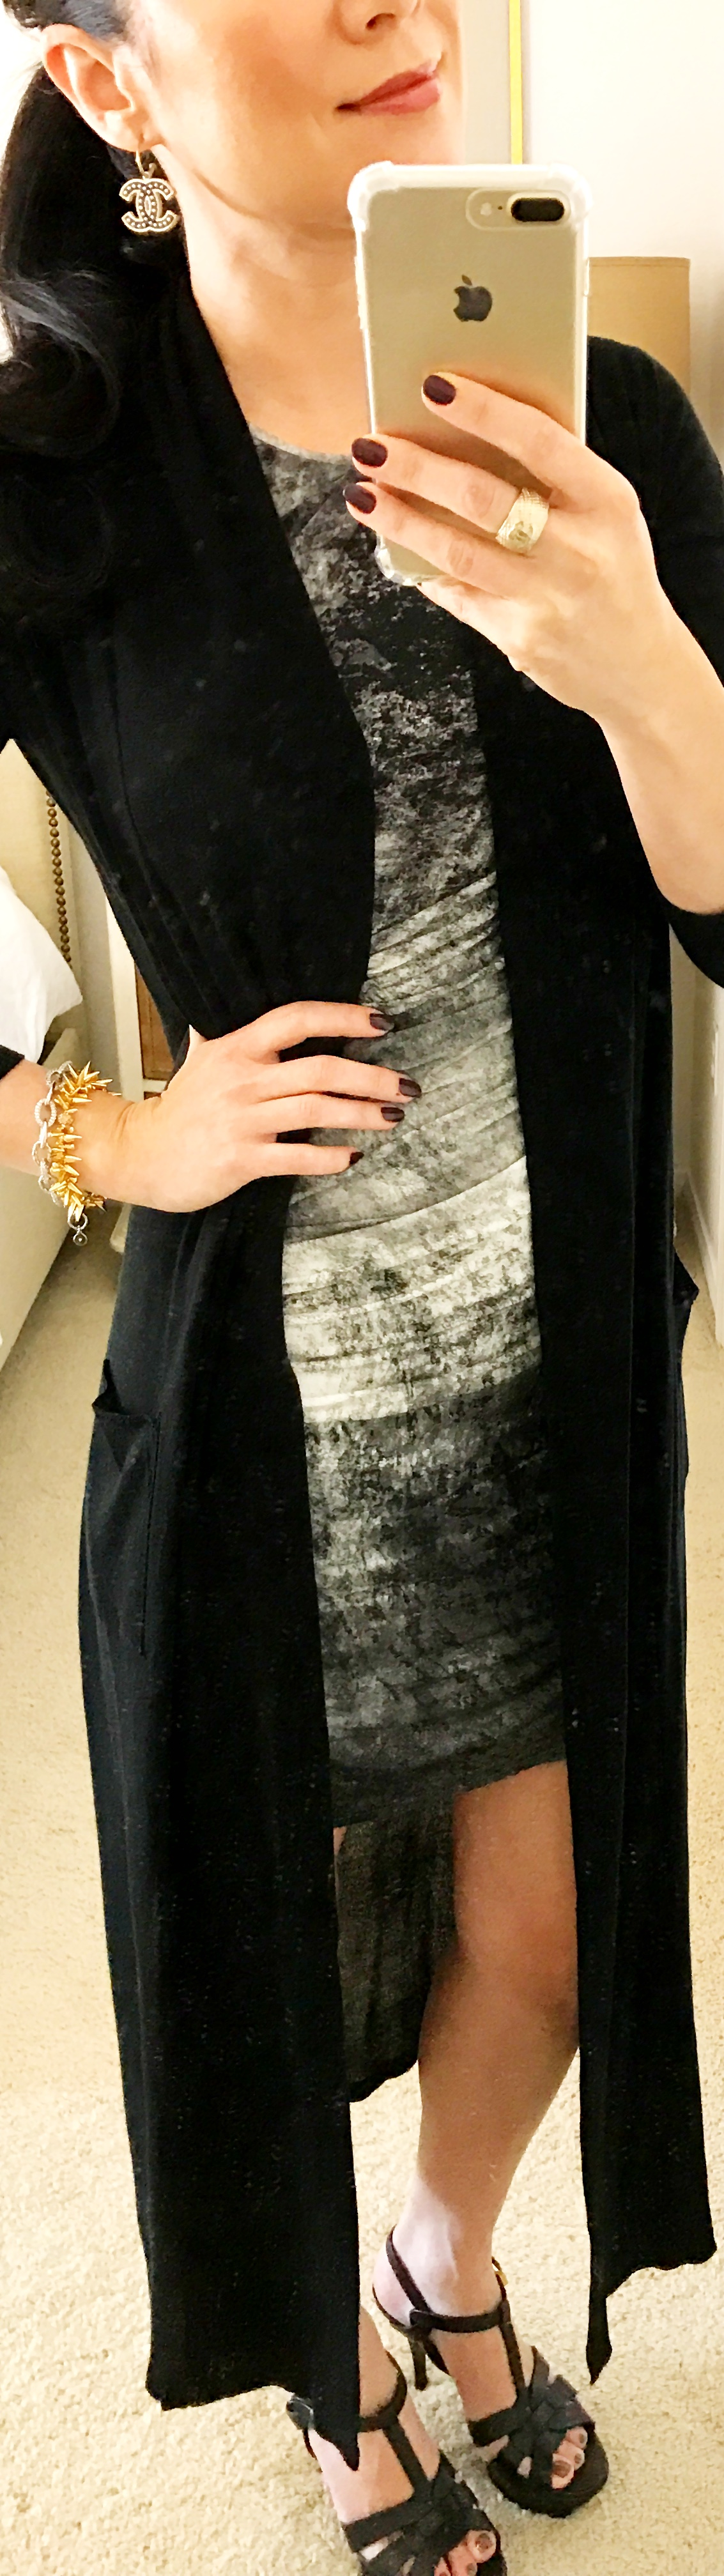 October 19th Helmut Lang Dress with Zara Duster